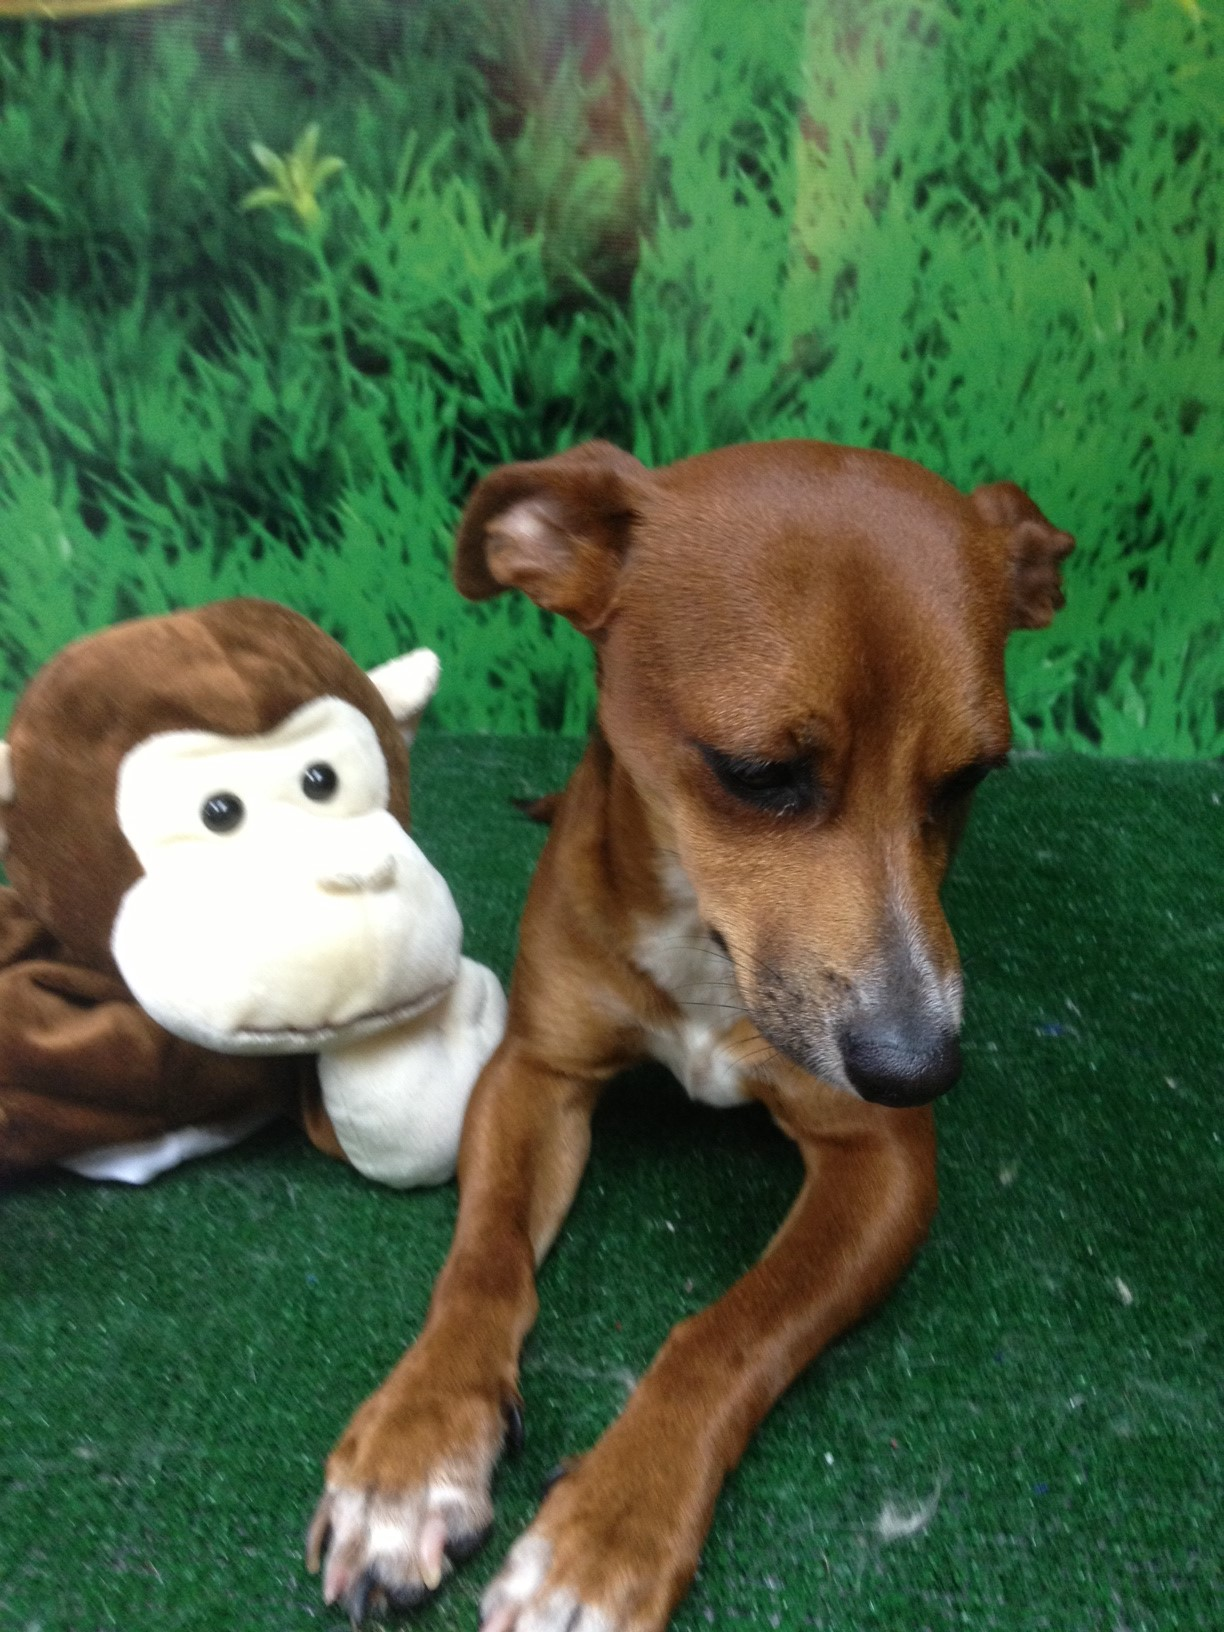 pepito is a dog that needs a home